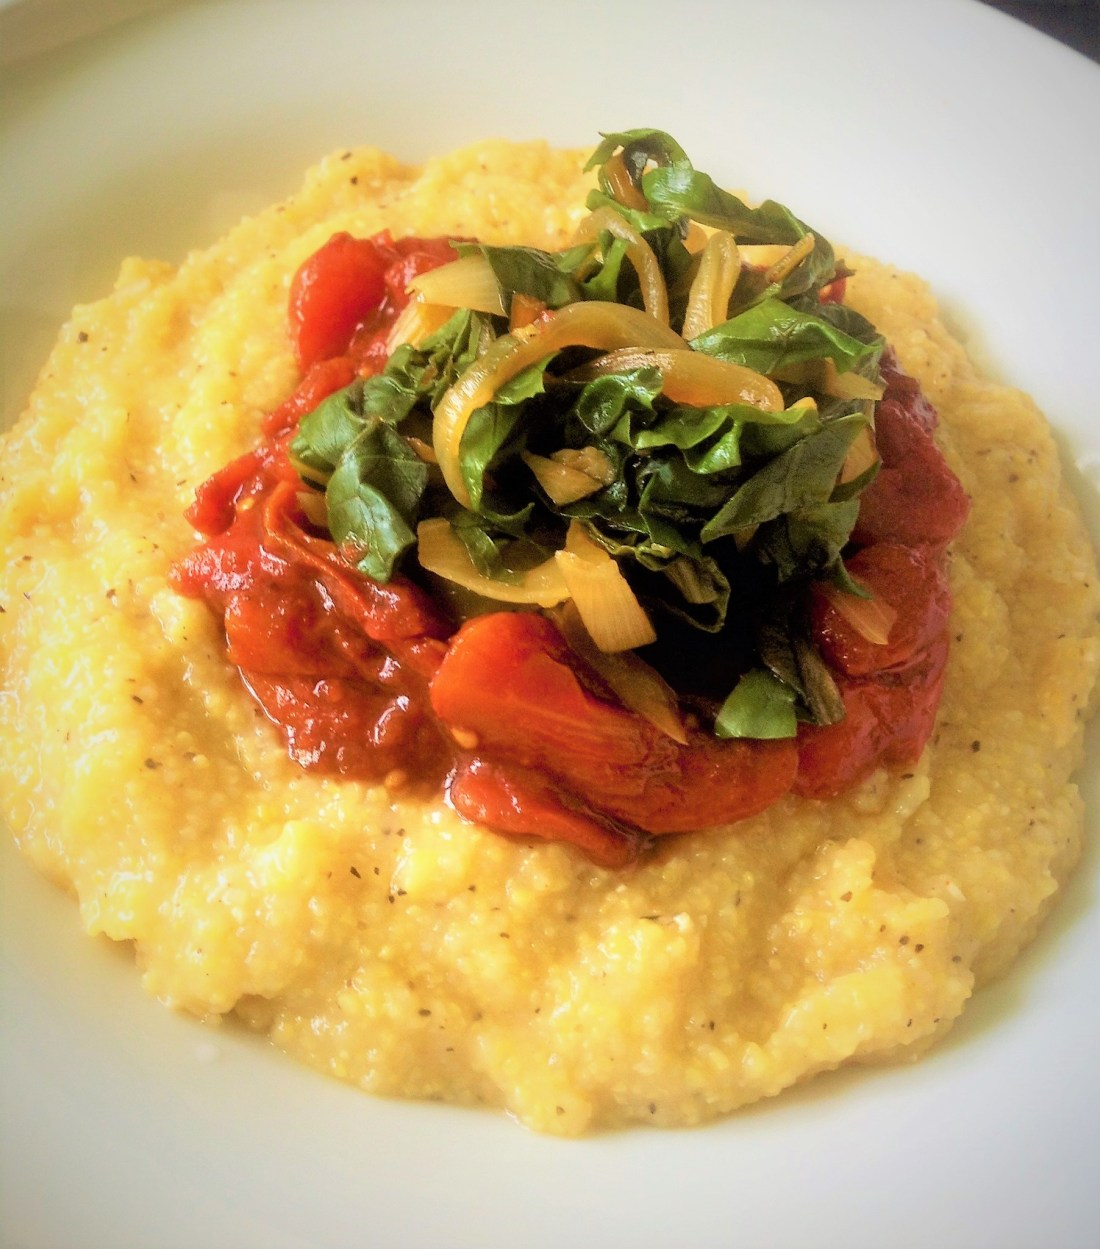 Peppery Southern Grits, Tomato Jam and Braised Greens - Healthy, Plant-Based, Oil-Free, Gluten-Free, Comfort Food, Vegan Recipe